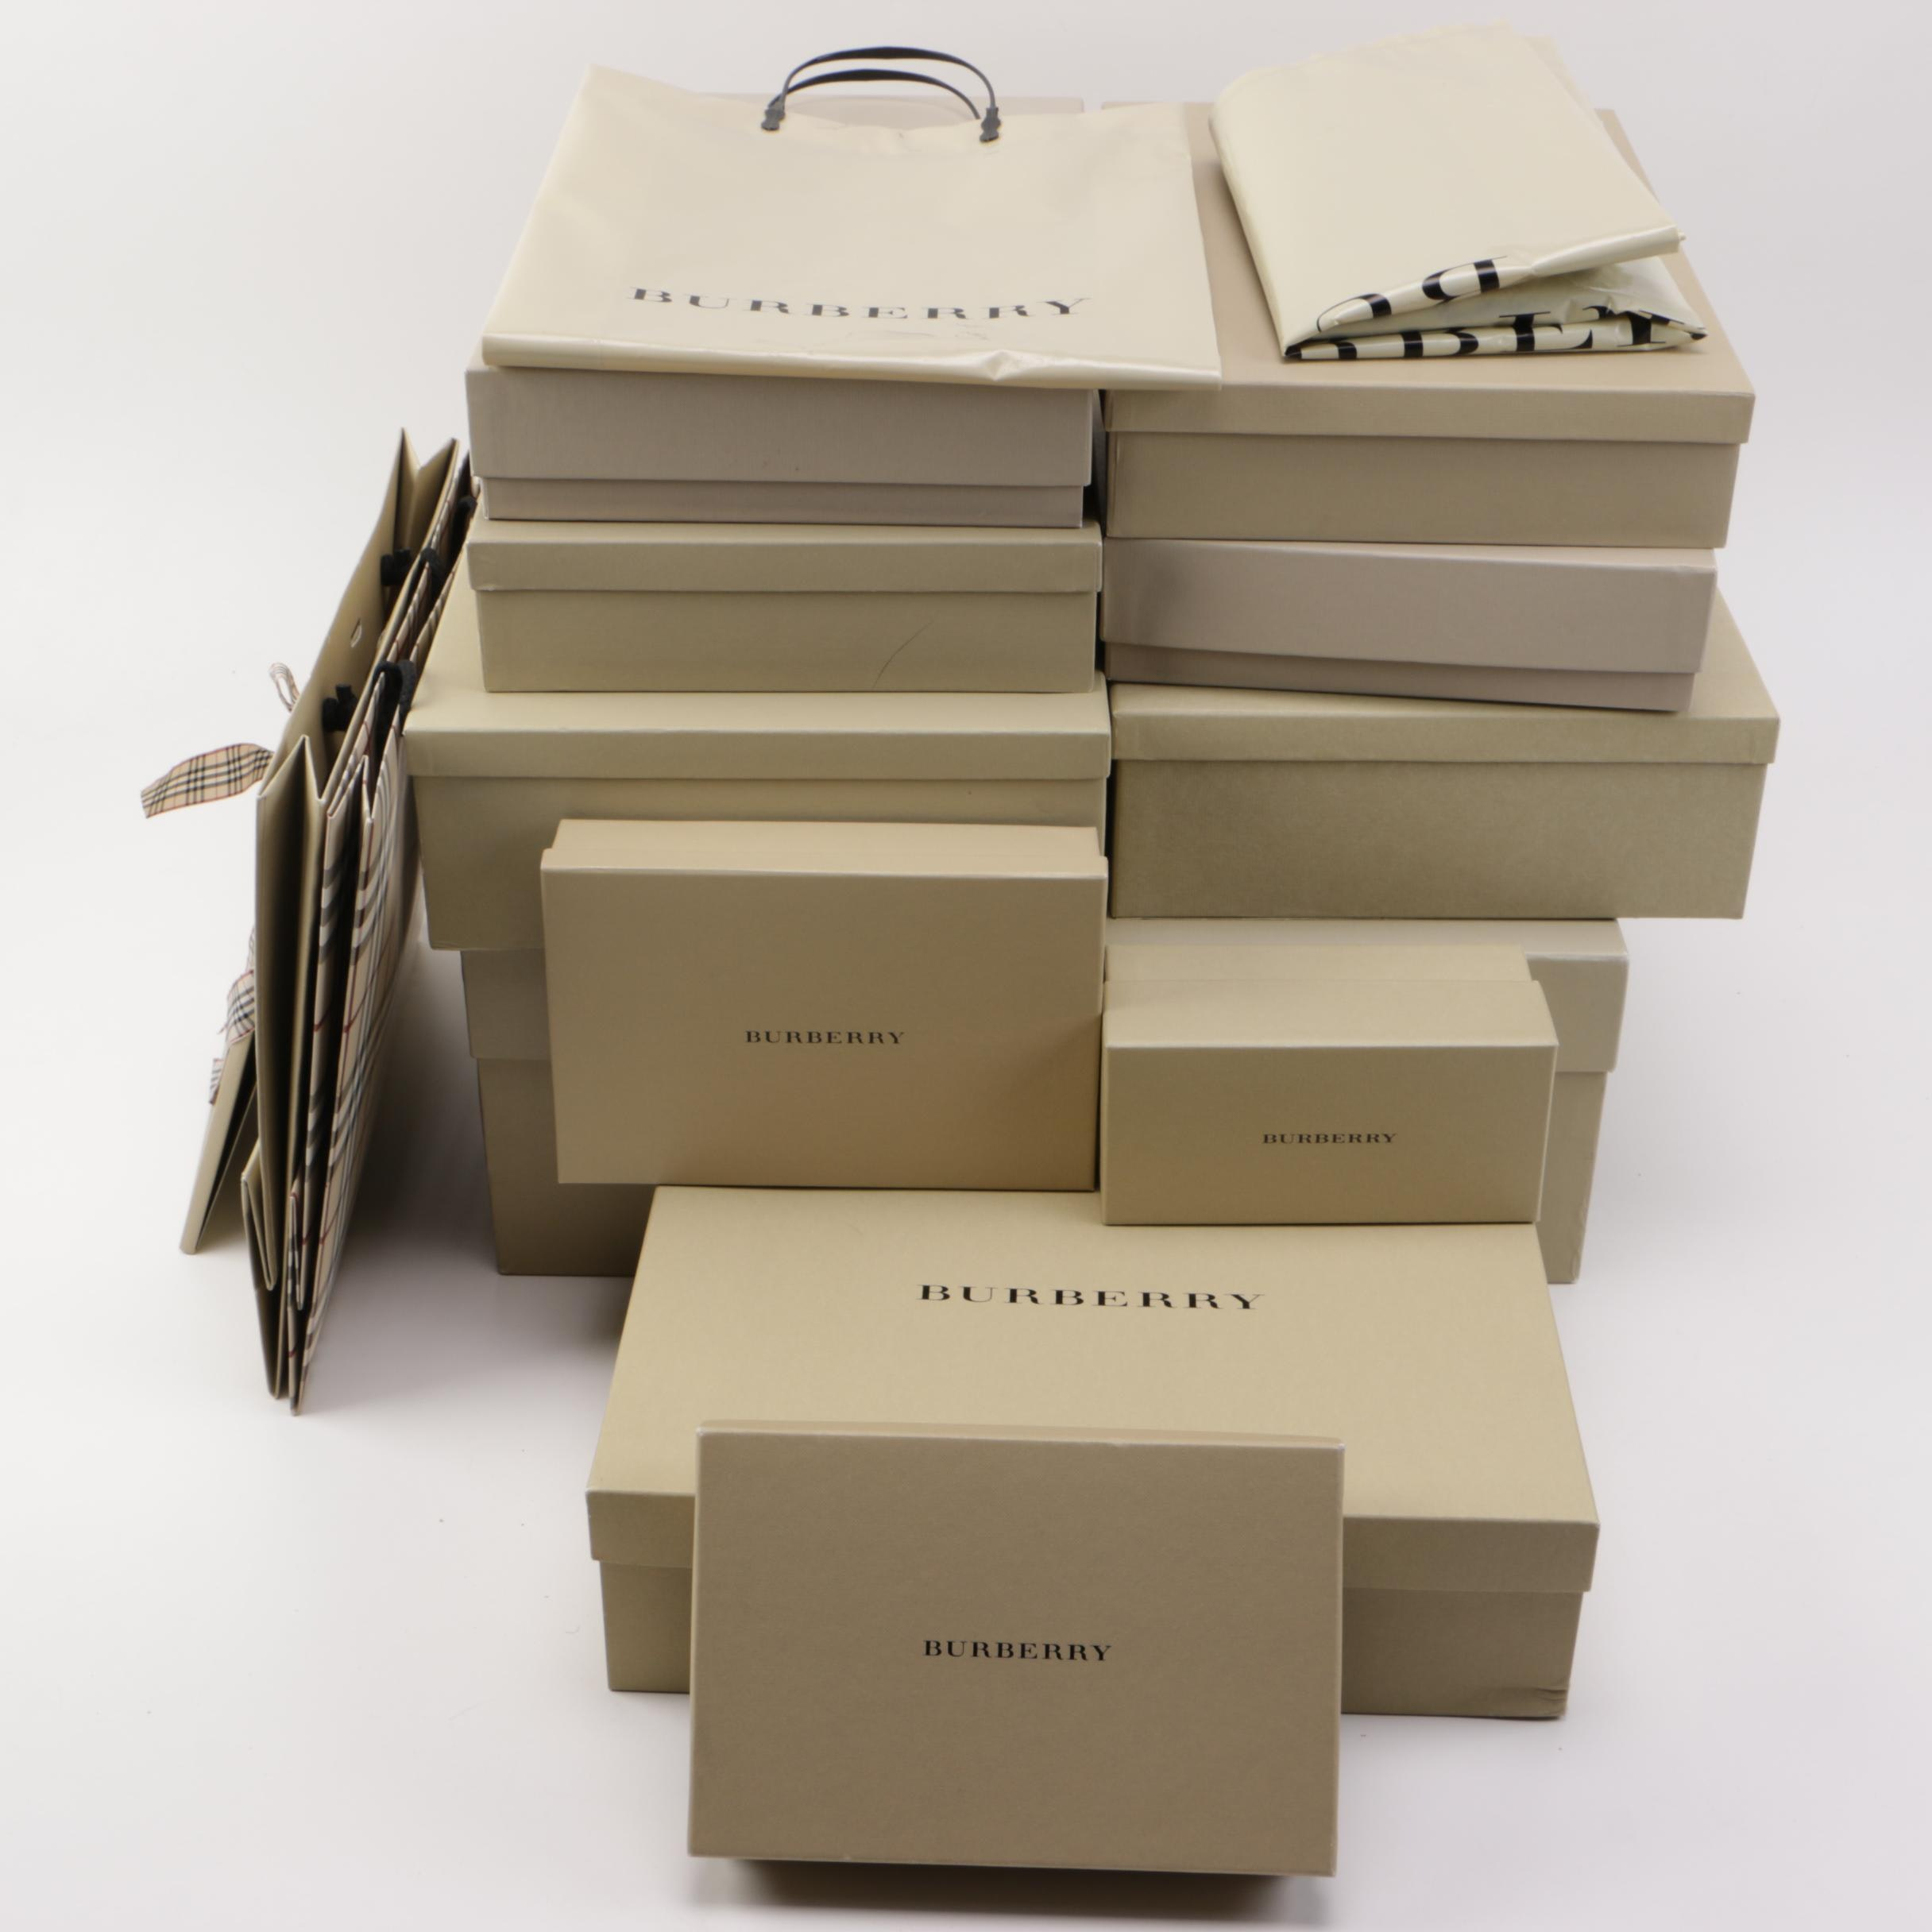 Assorted Burberry Shopping Boxes and Bags